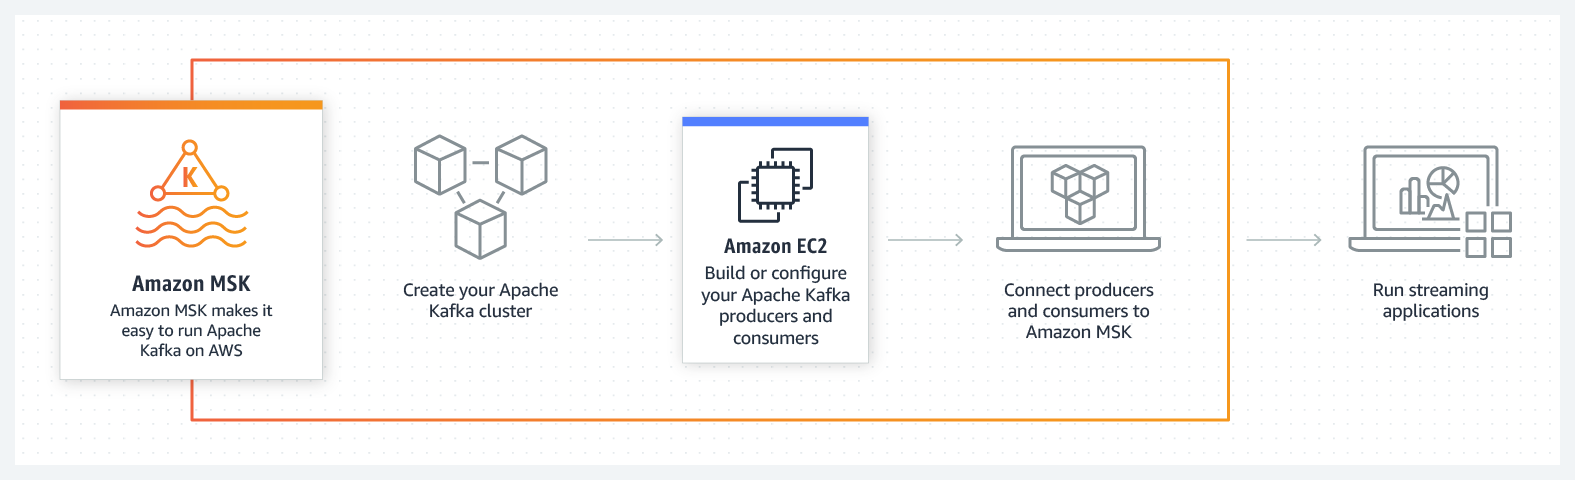 Diagramme de fonctionnement d'Amazon MSK